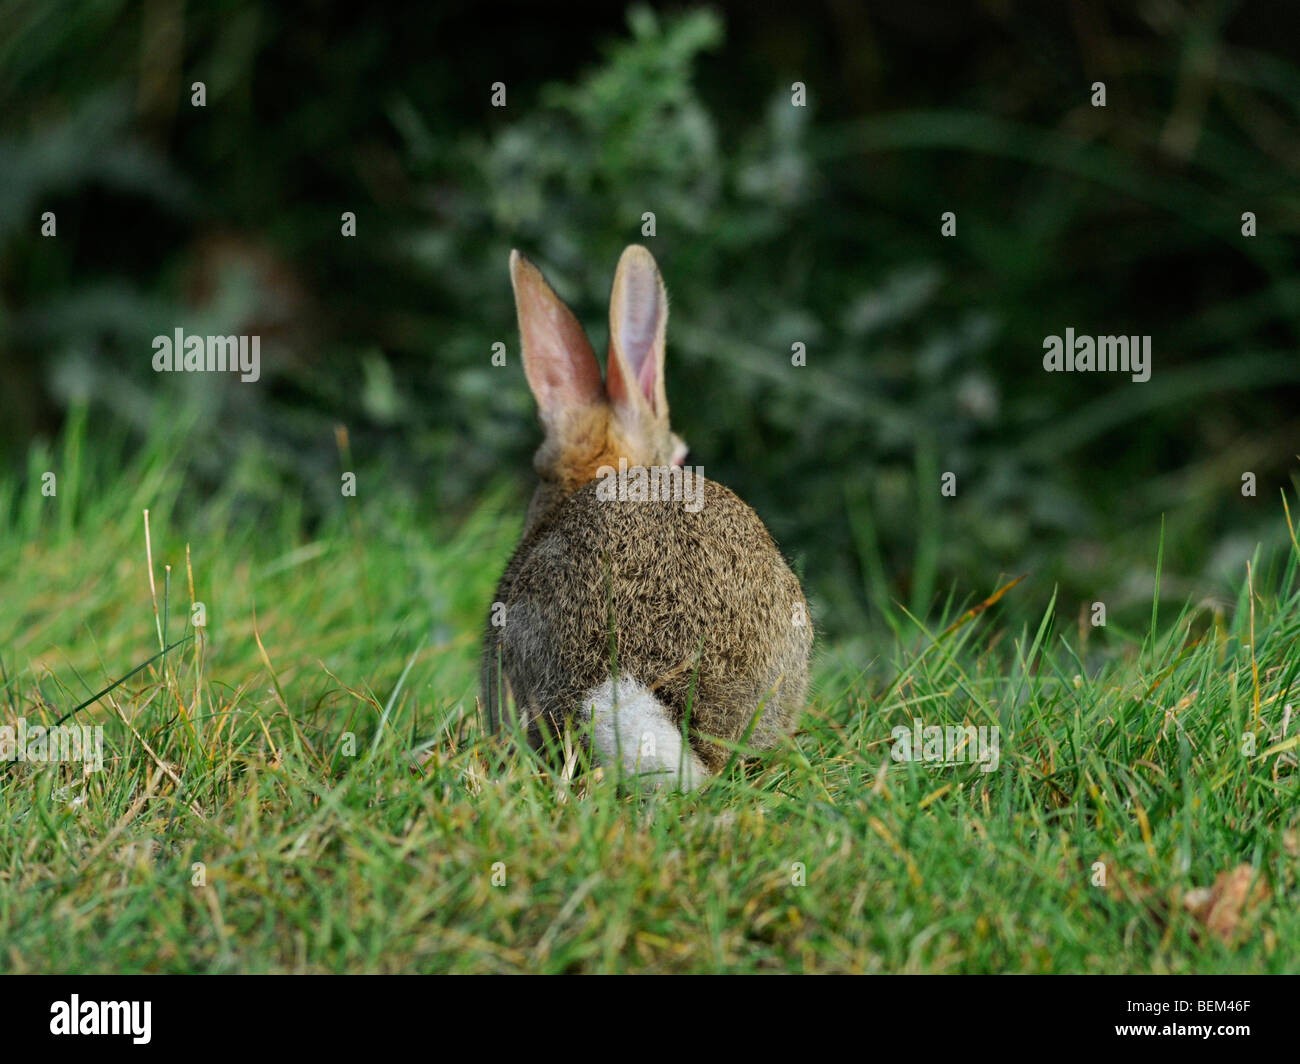 The back view of a small wild brown rabbit. - Stock Image